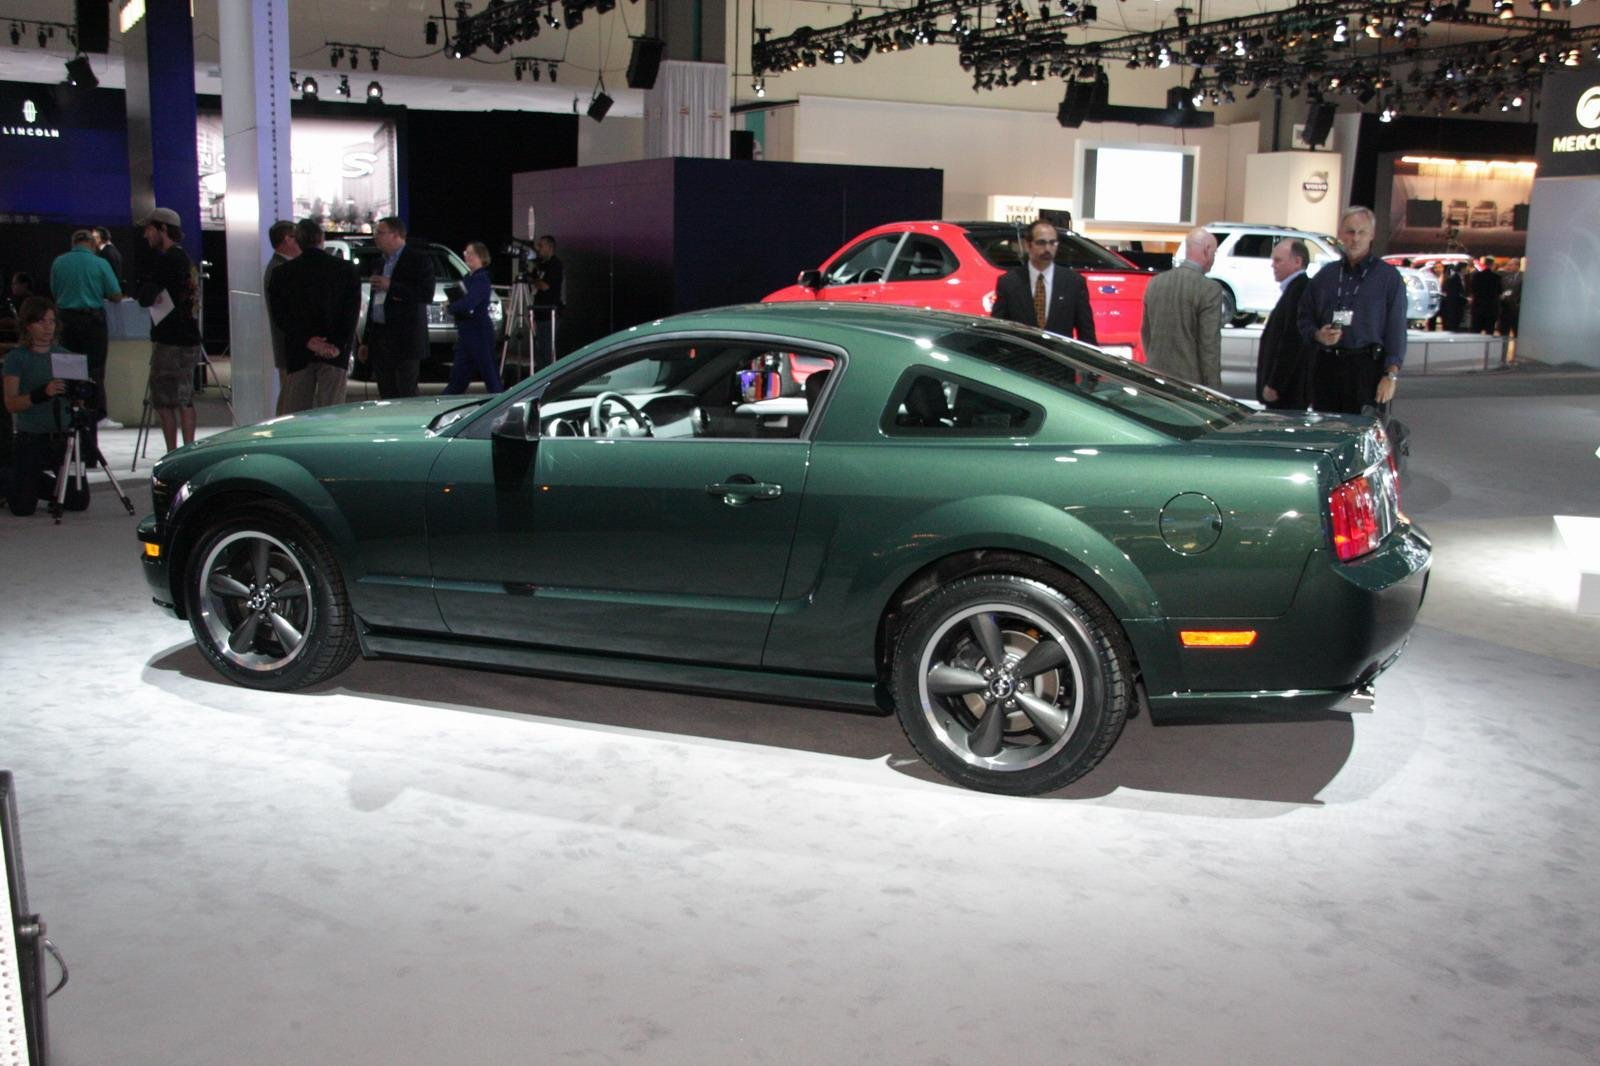 2008 ford mustang bullitt picture 215042 car review top speed. Black Bedroom Furniture Sets. Home Design Ideas